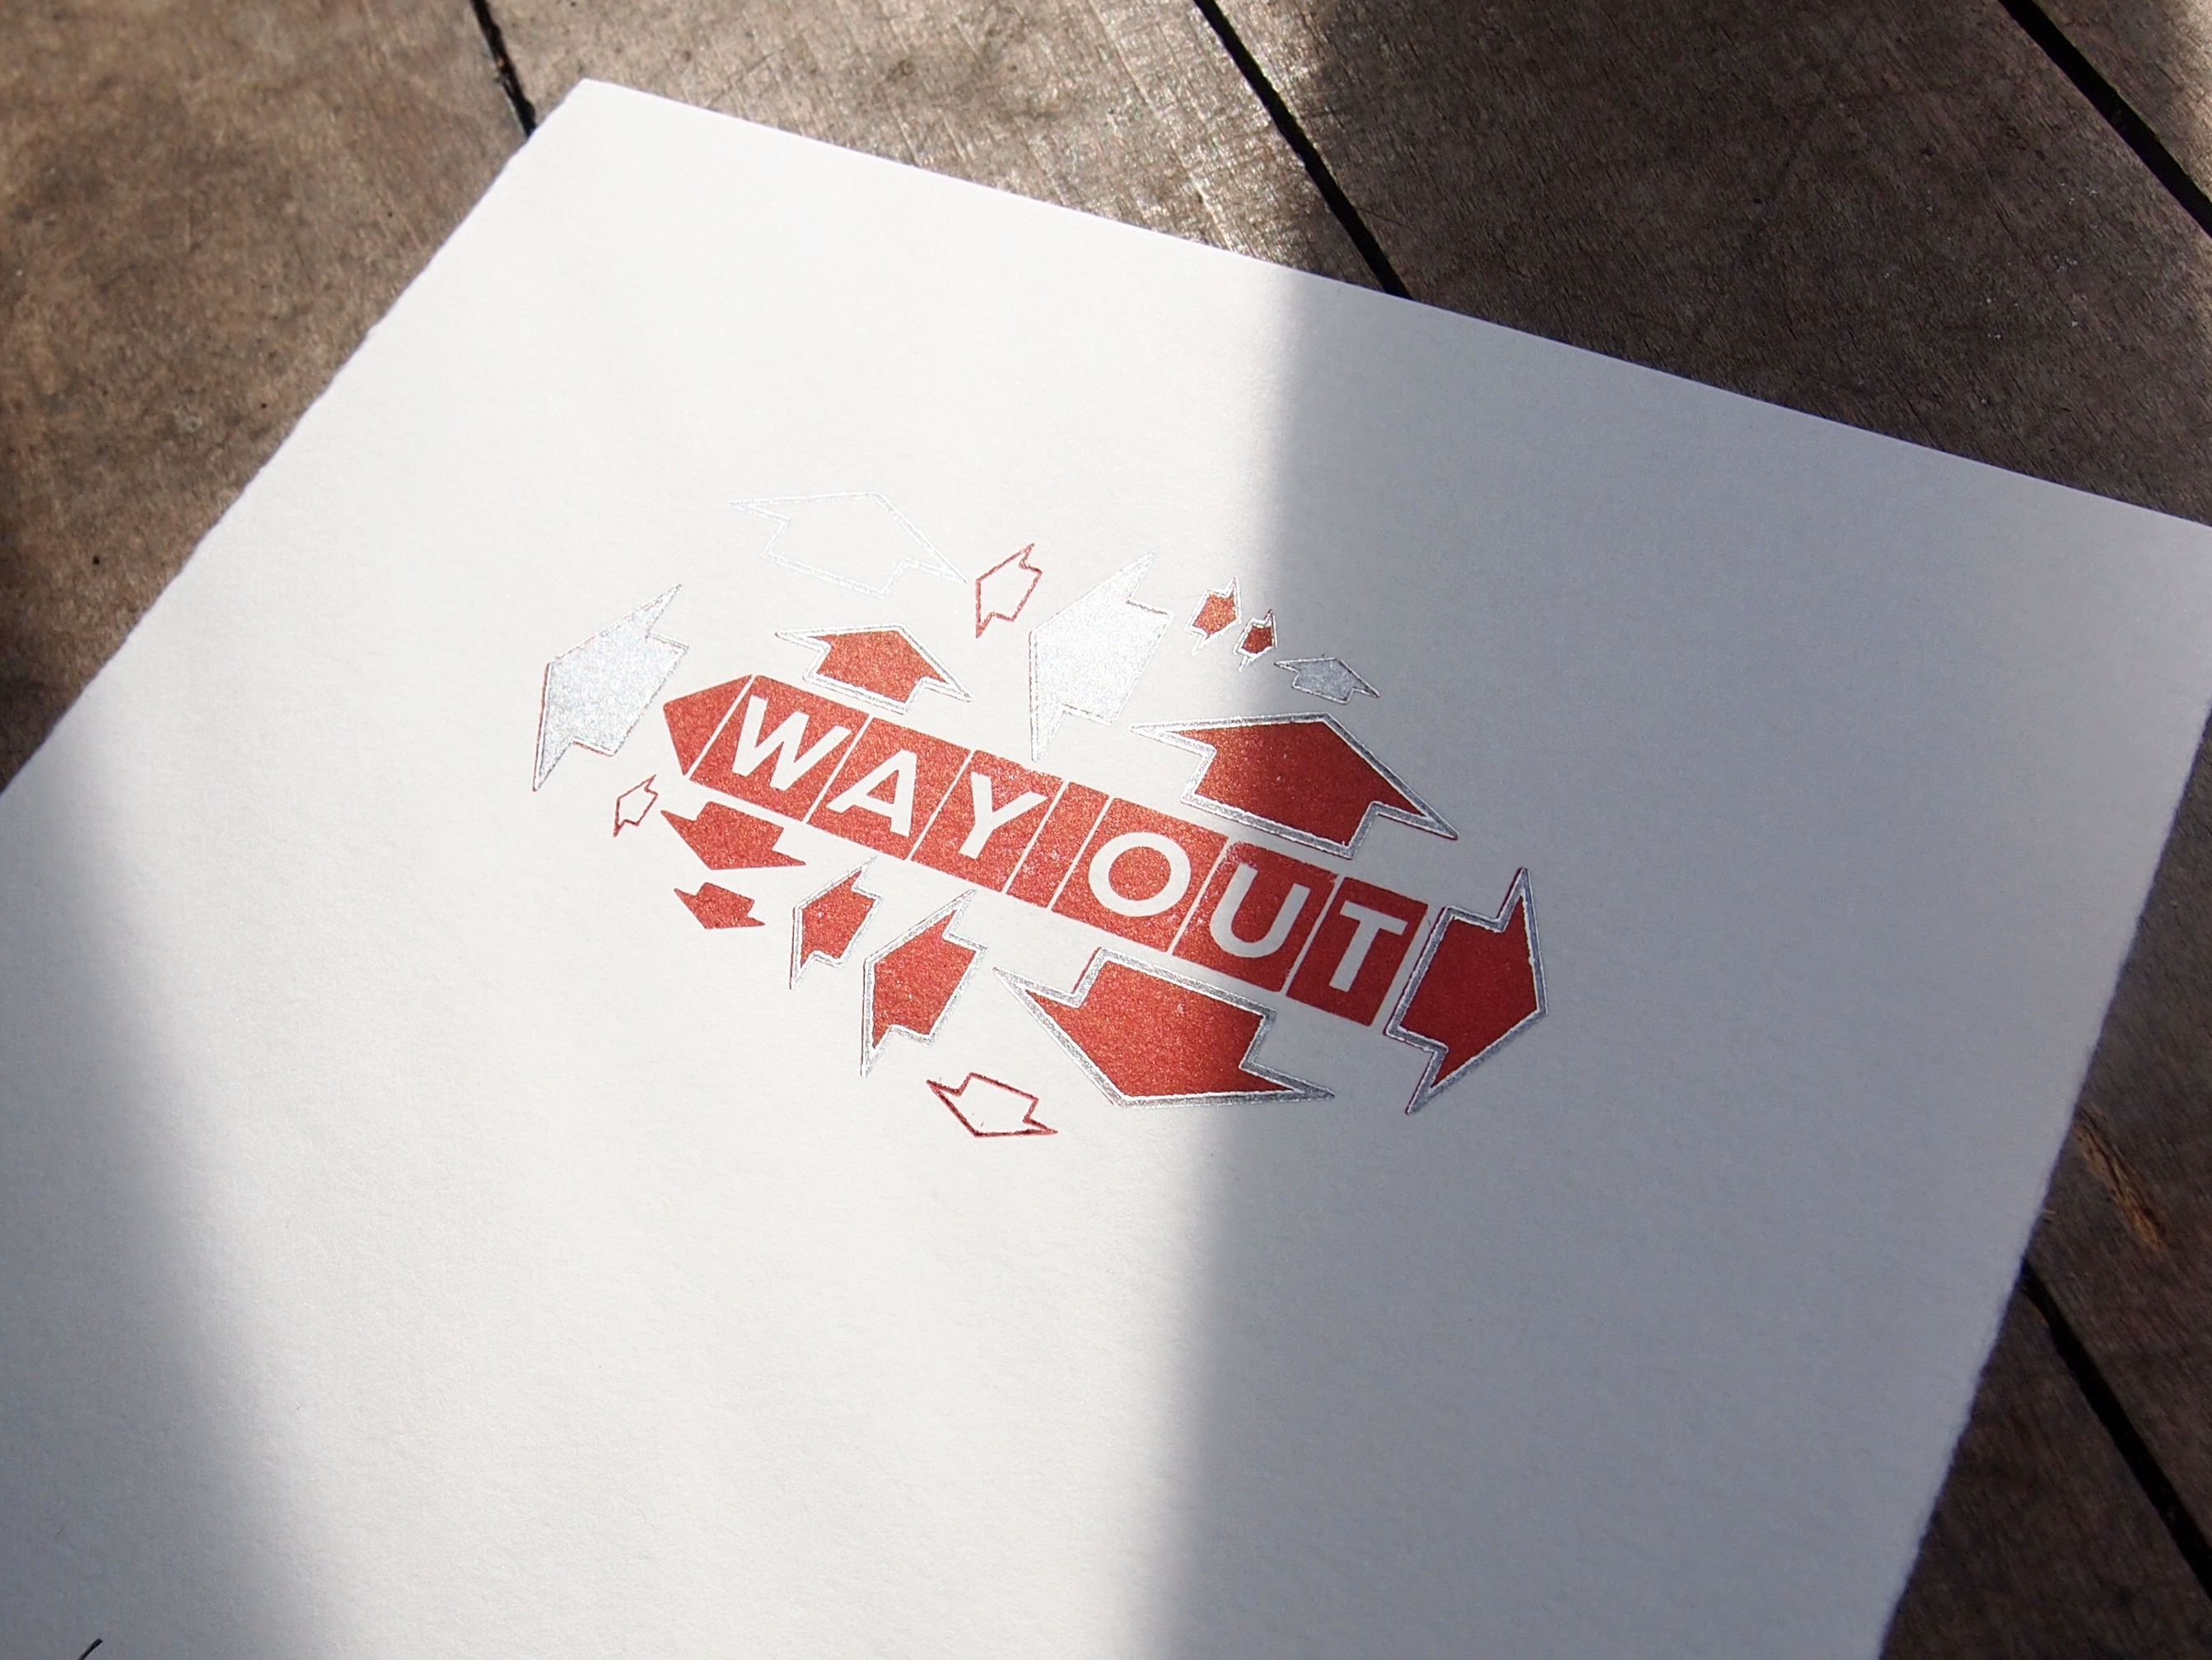 Way Out Print by Chris Barker